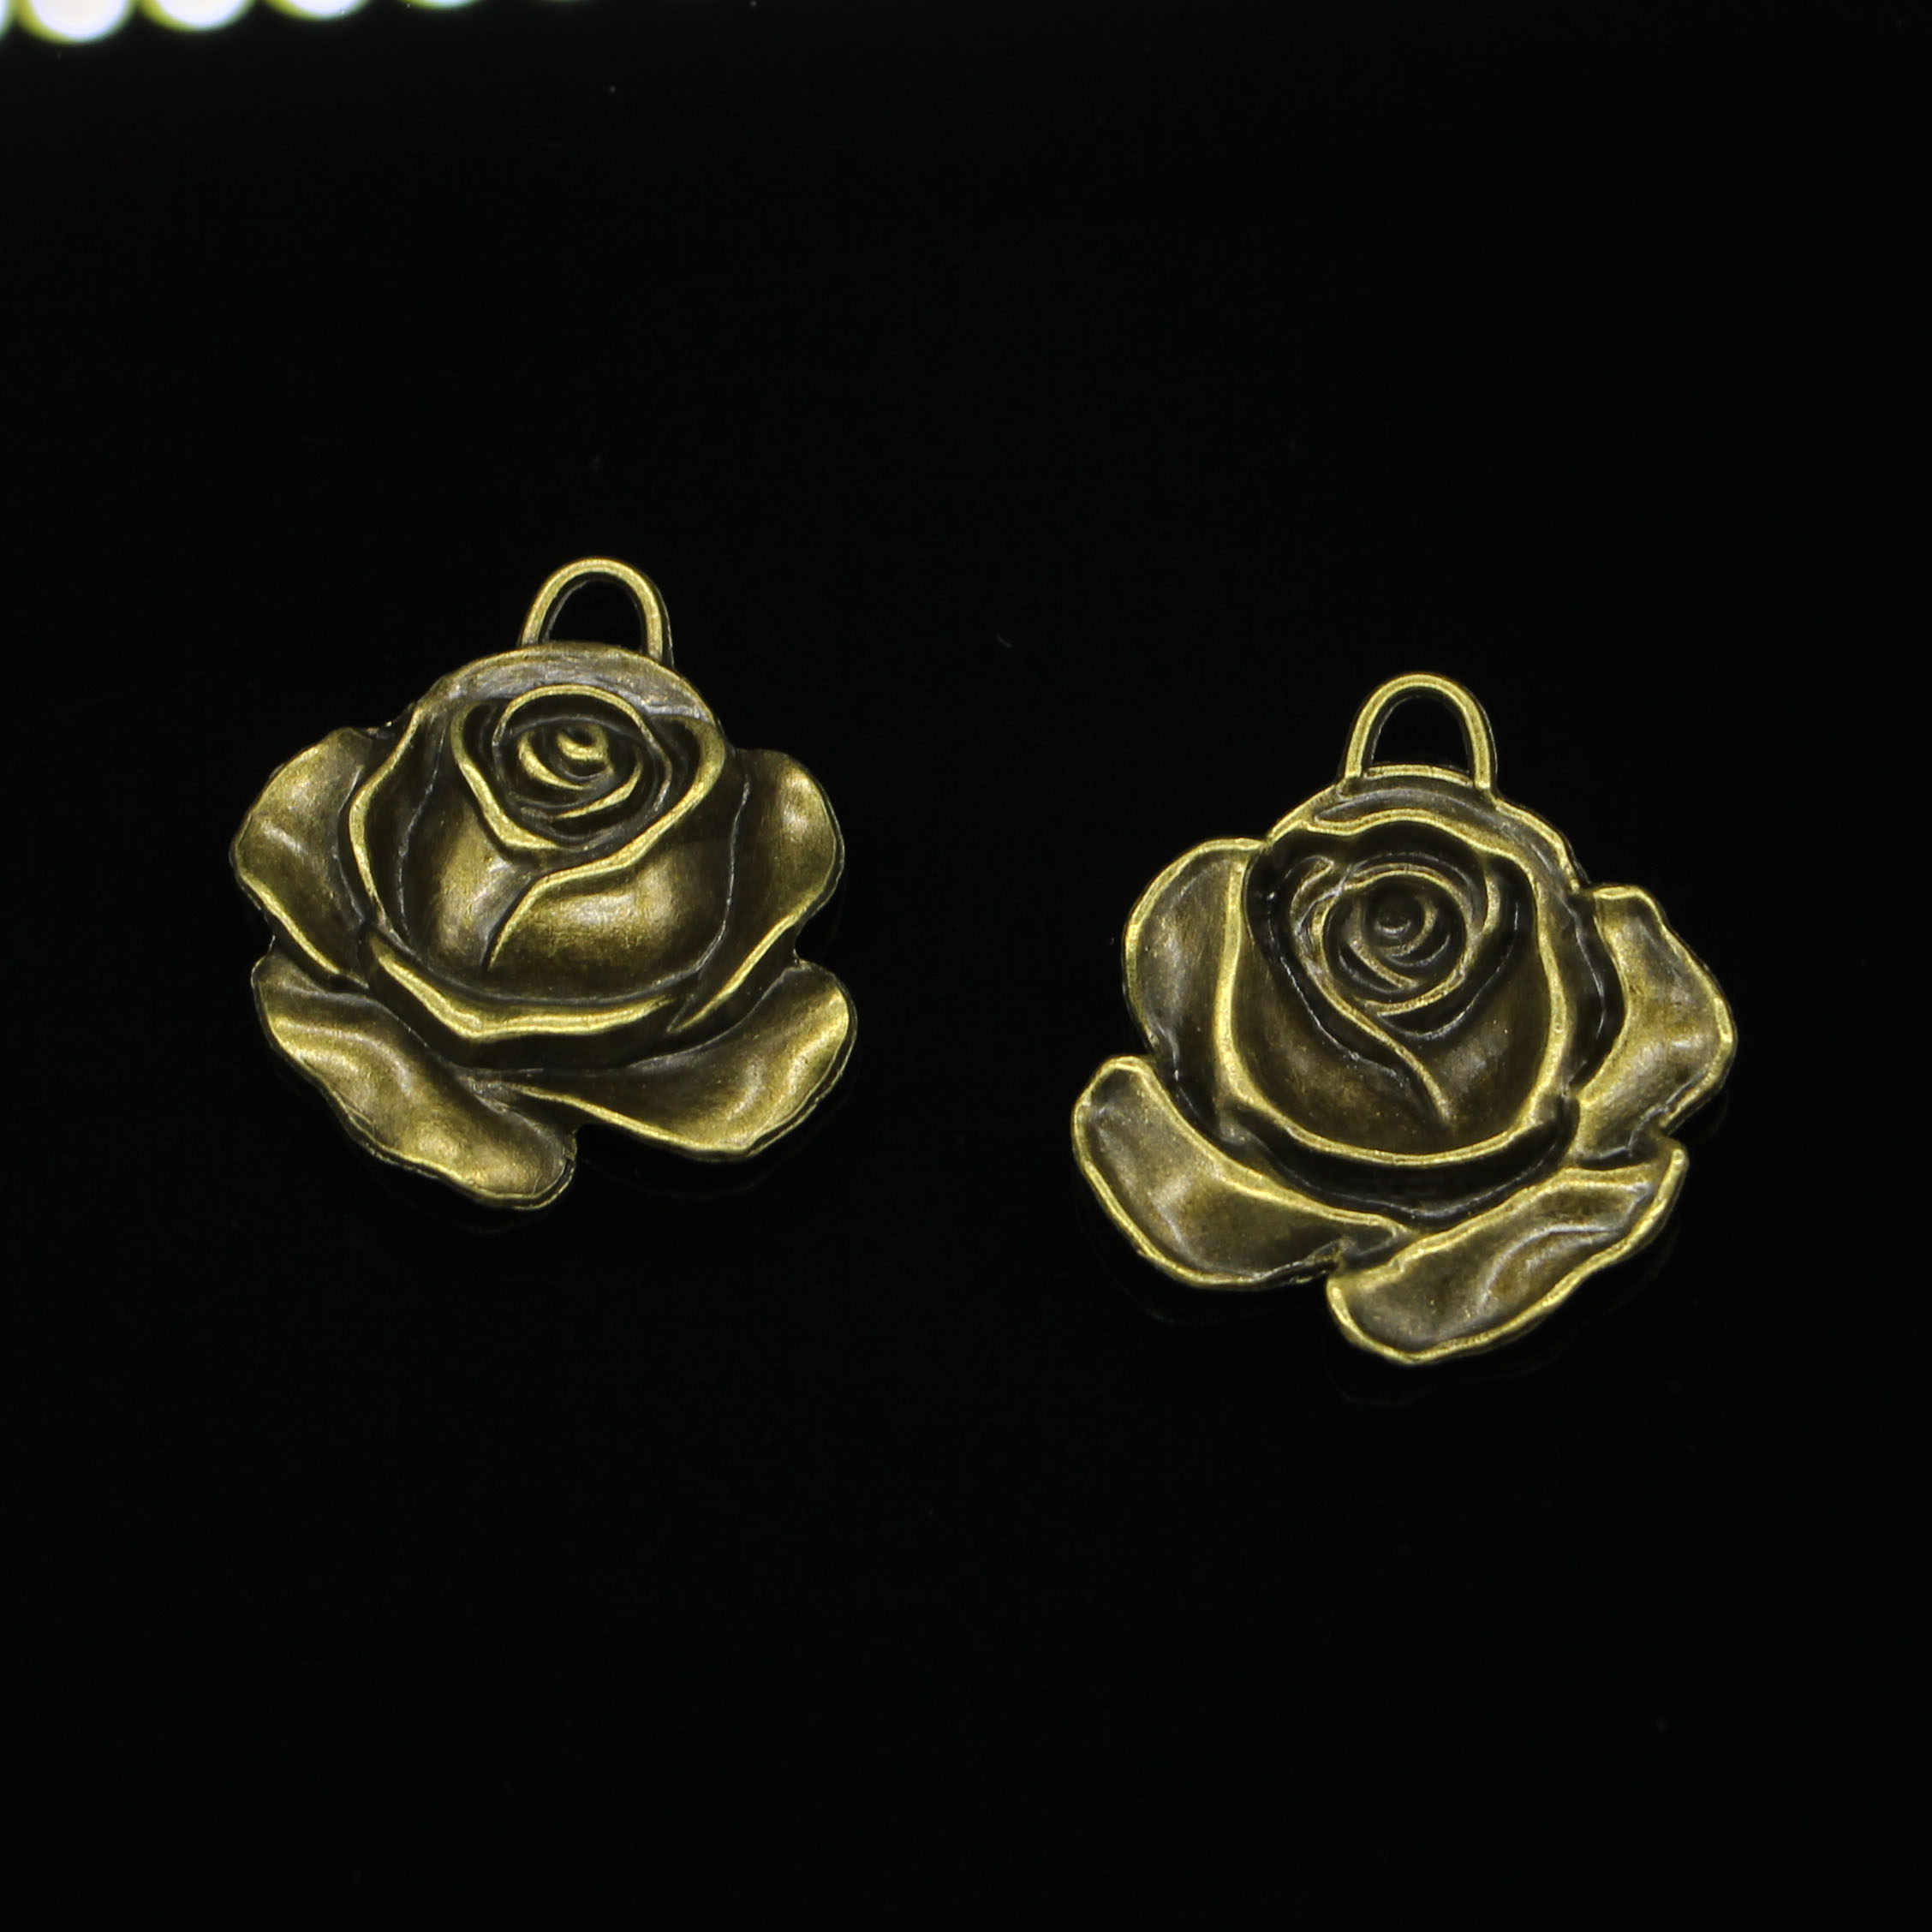 24pcs Antique Bronze Plated rose flower Charms for Jewelry Making DIY Handmade Pendants 36*33mm